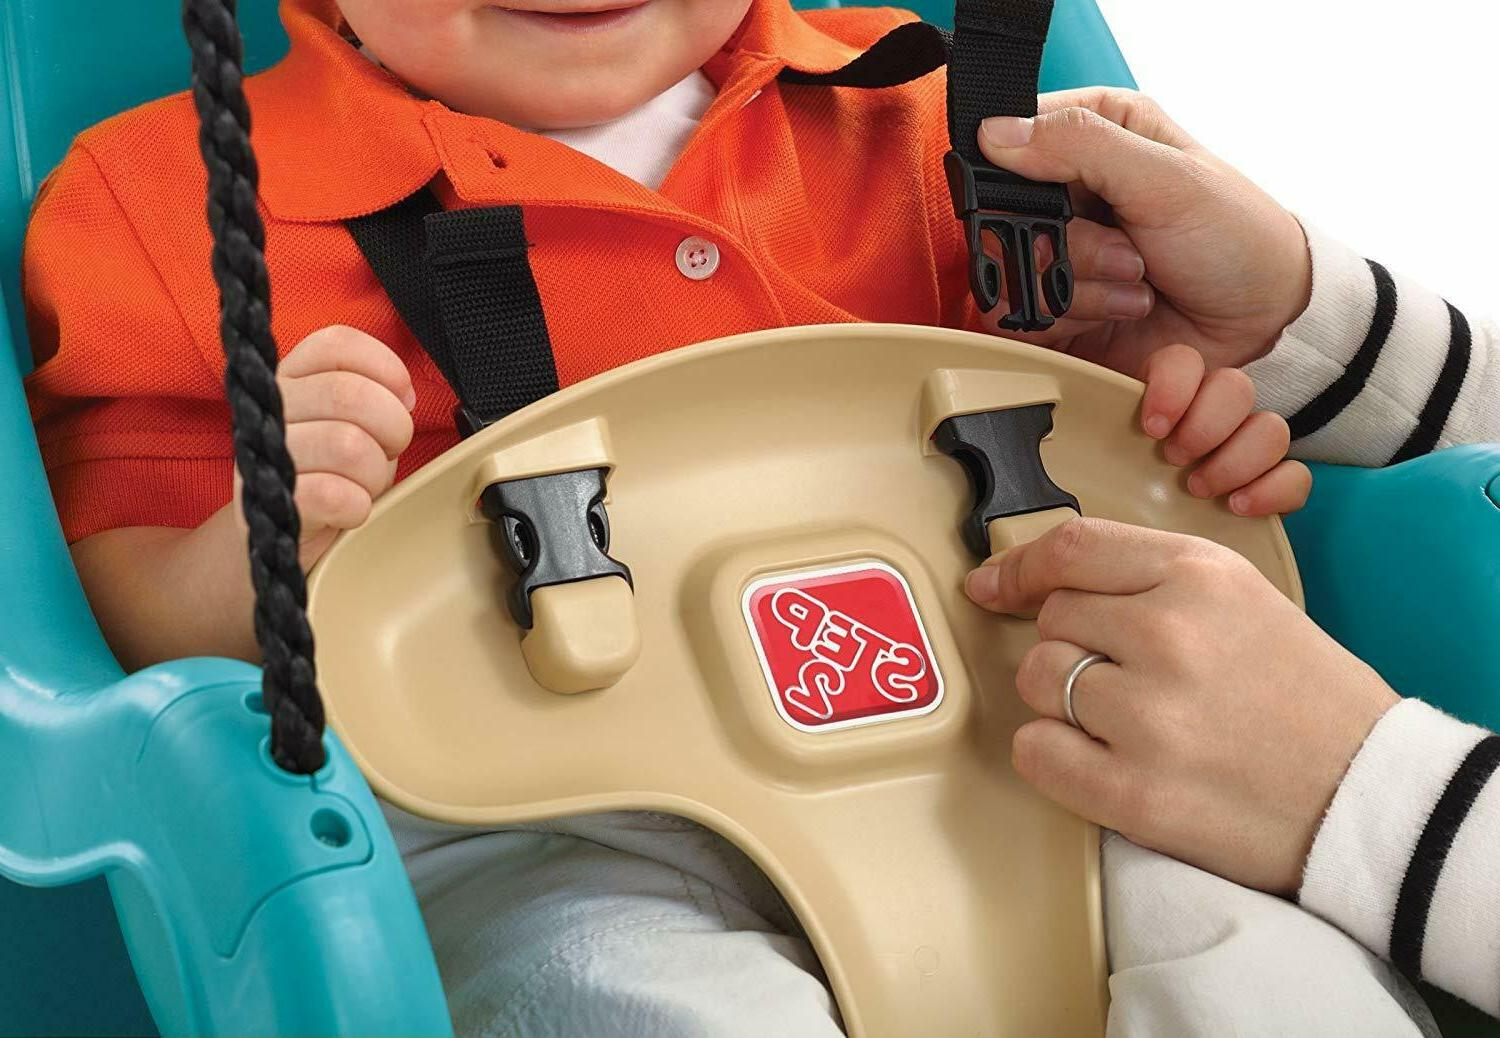 New Opened Infant To Toddler Swing Seat, Turquoise